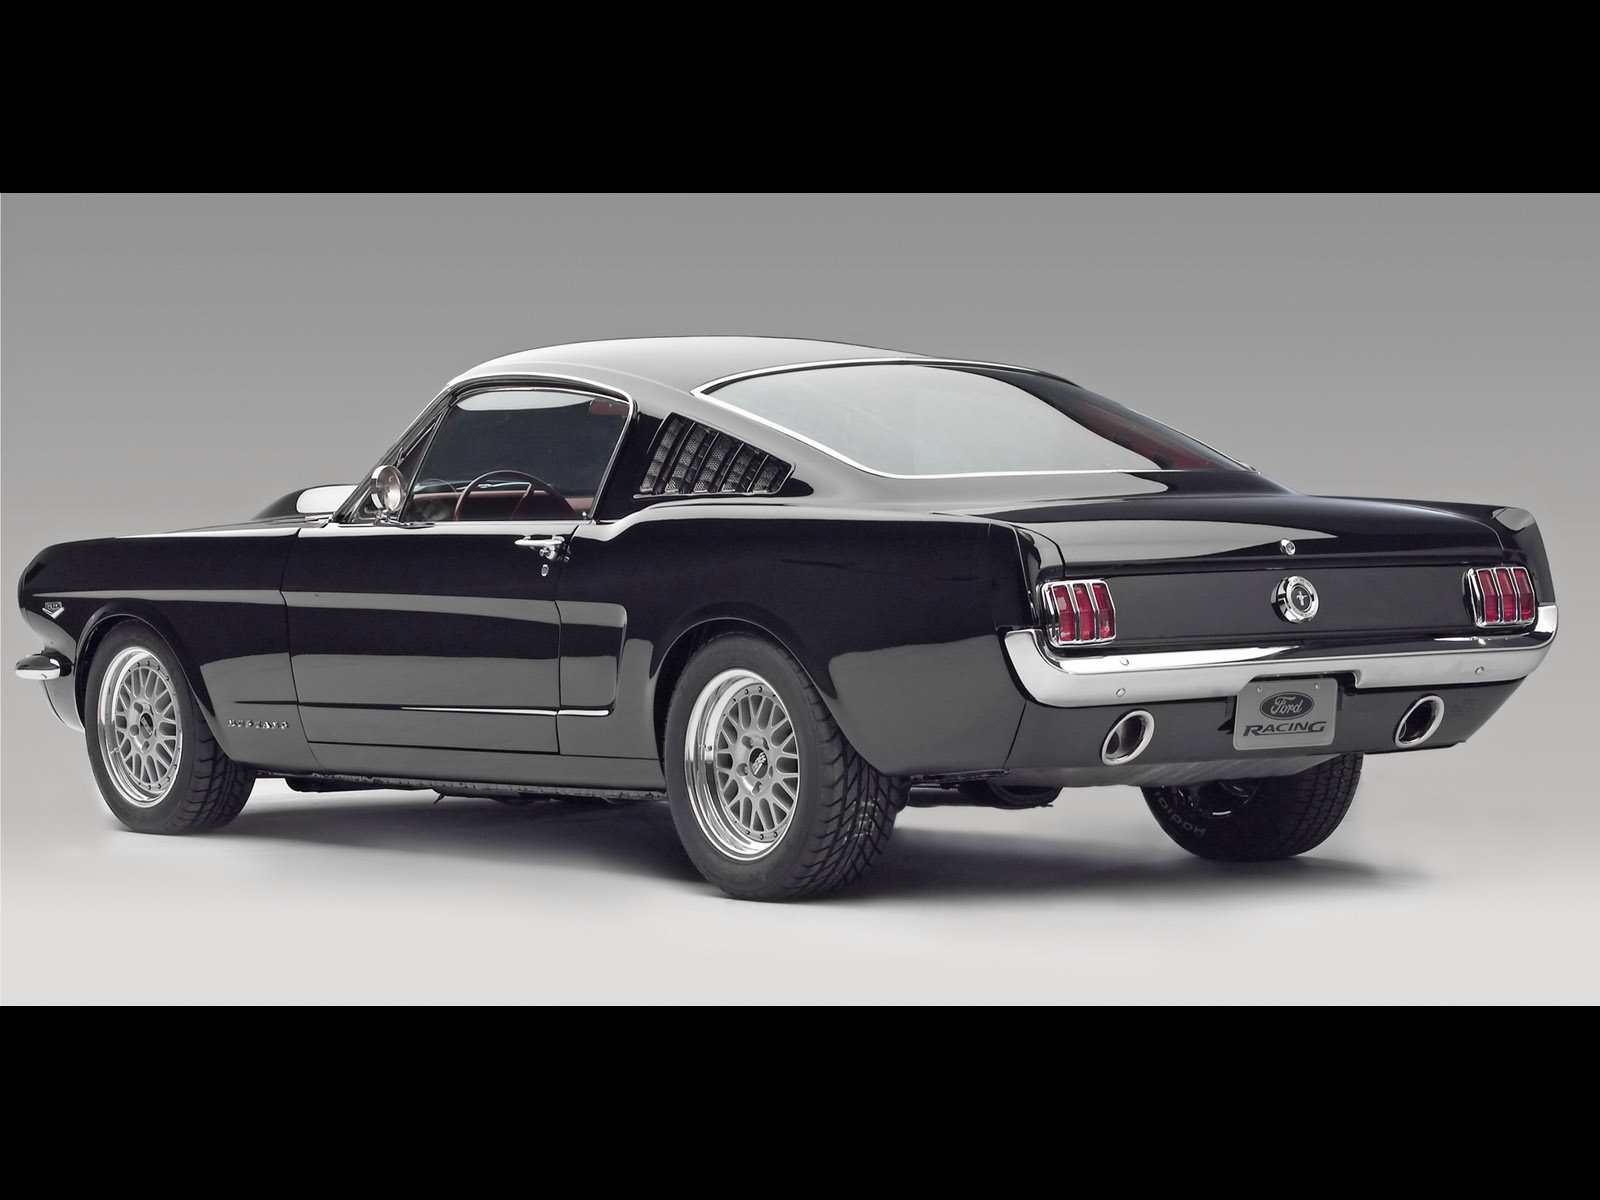 ford mustang 1960 review amazing pictures and images look at the car. Black Bedroom Furniture Sets. Home Design Ideas